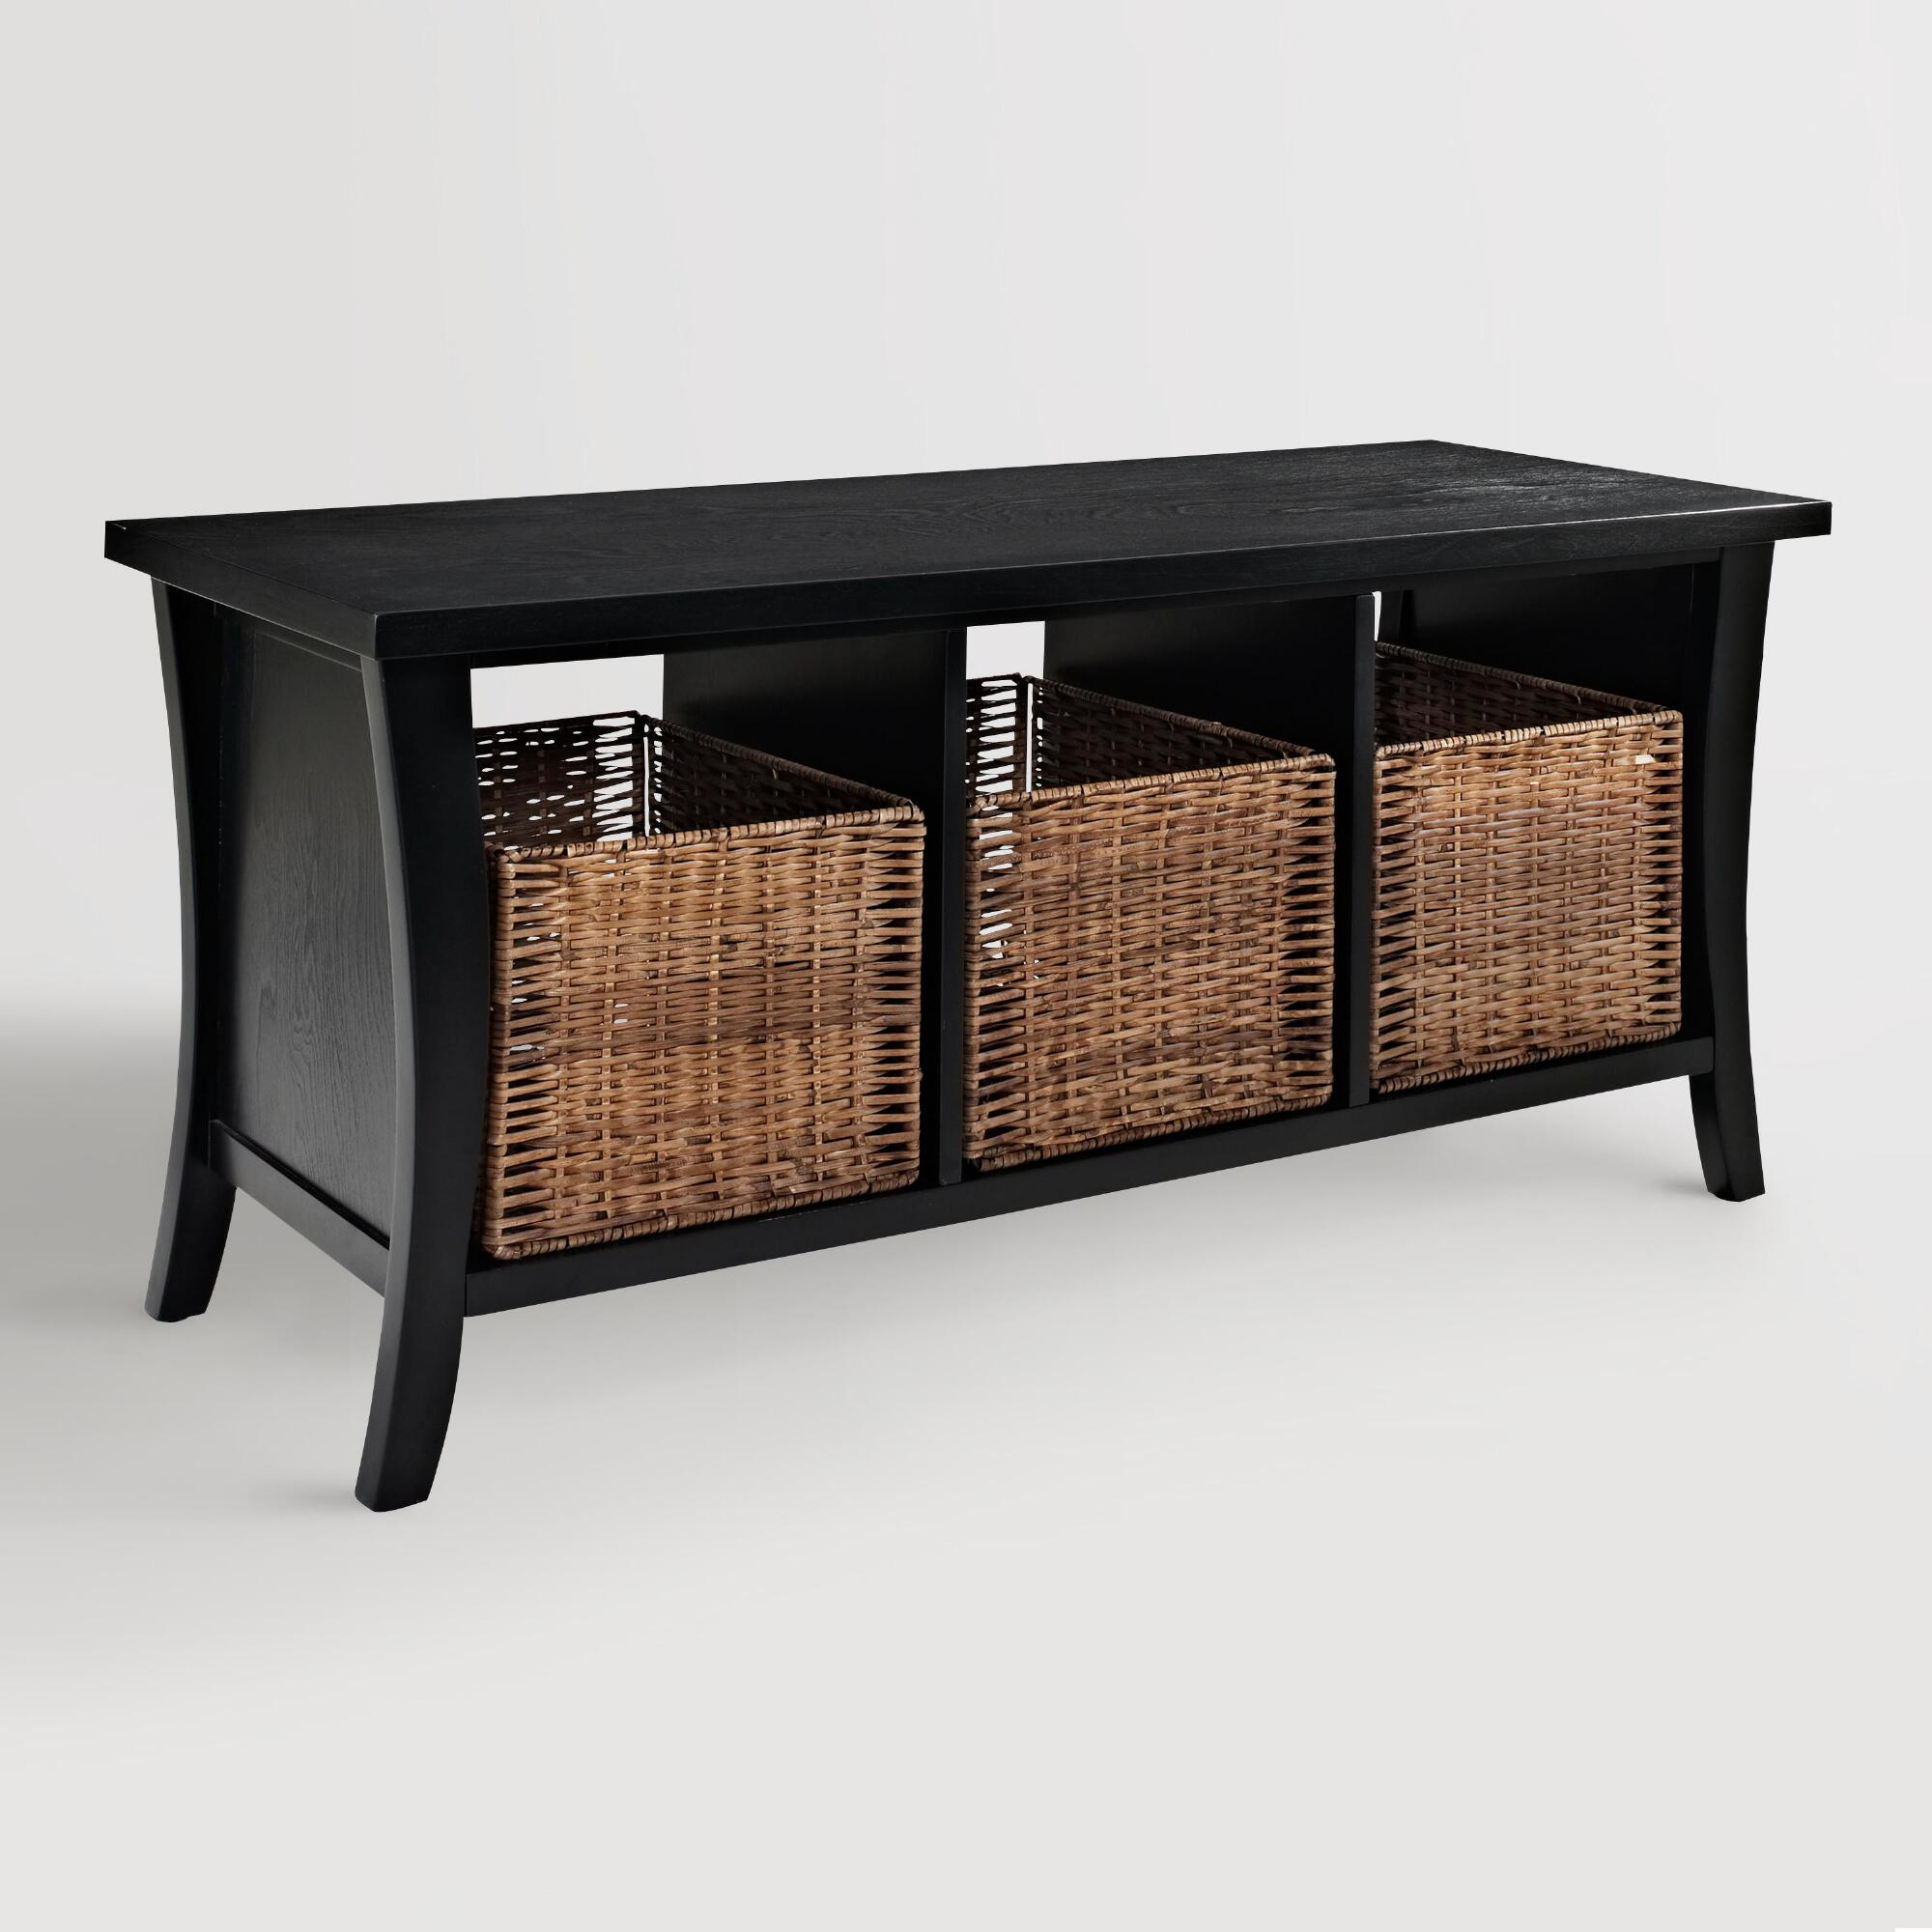 Black wood cassia entryway storage bench with baskets world market Bench with baskets